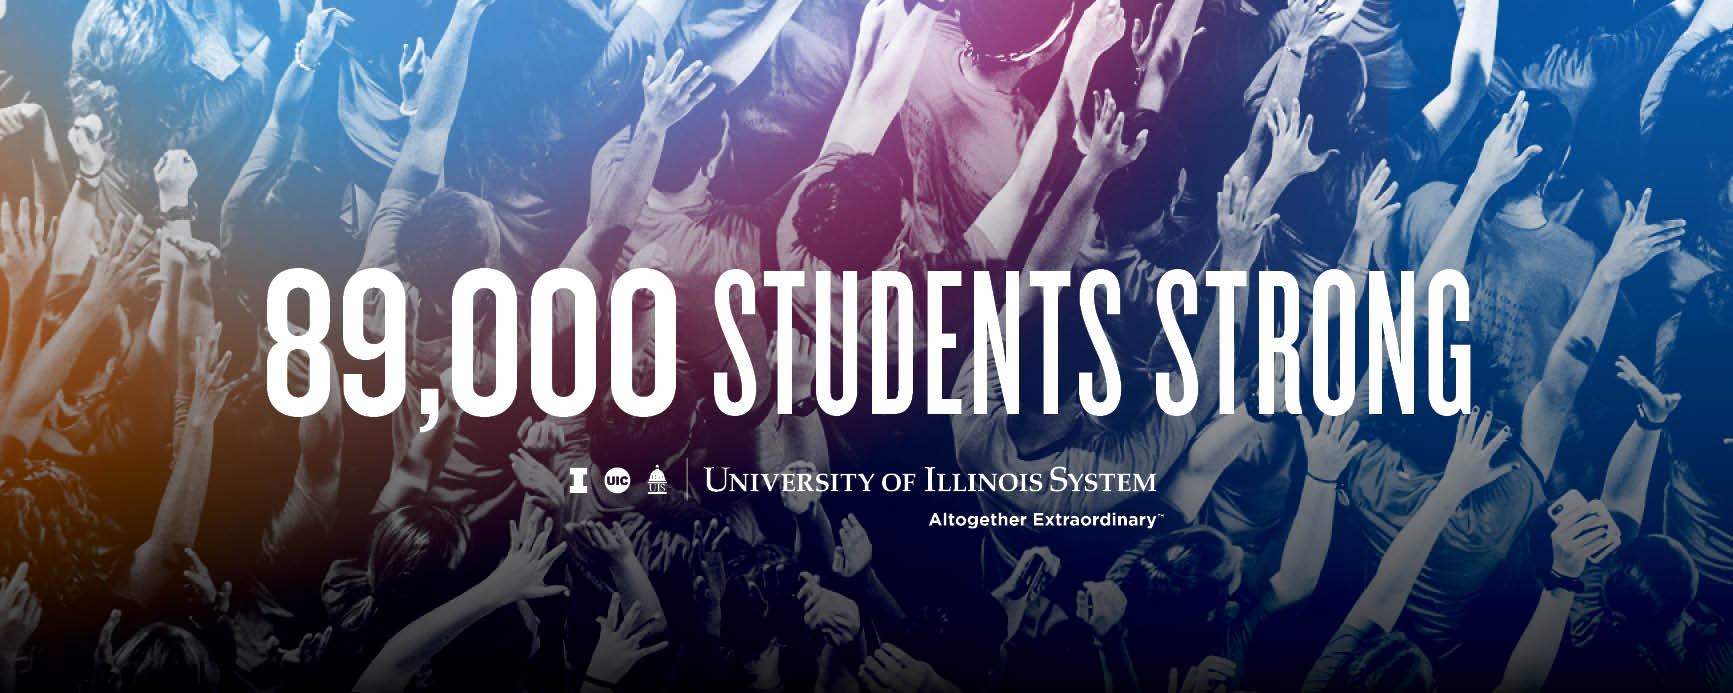 89,000 students strong